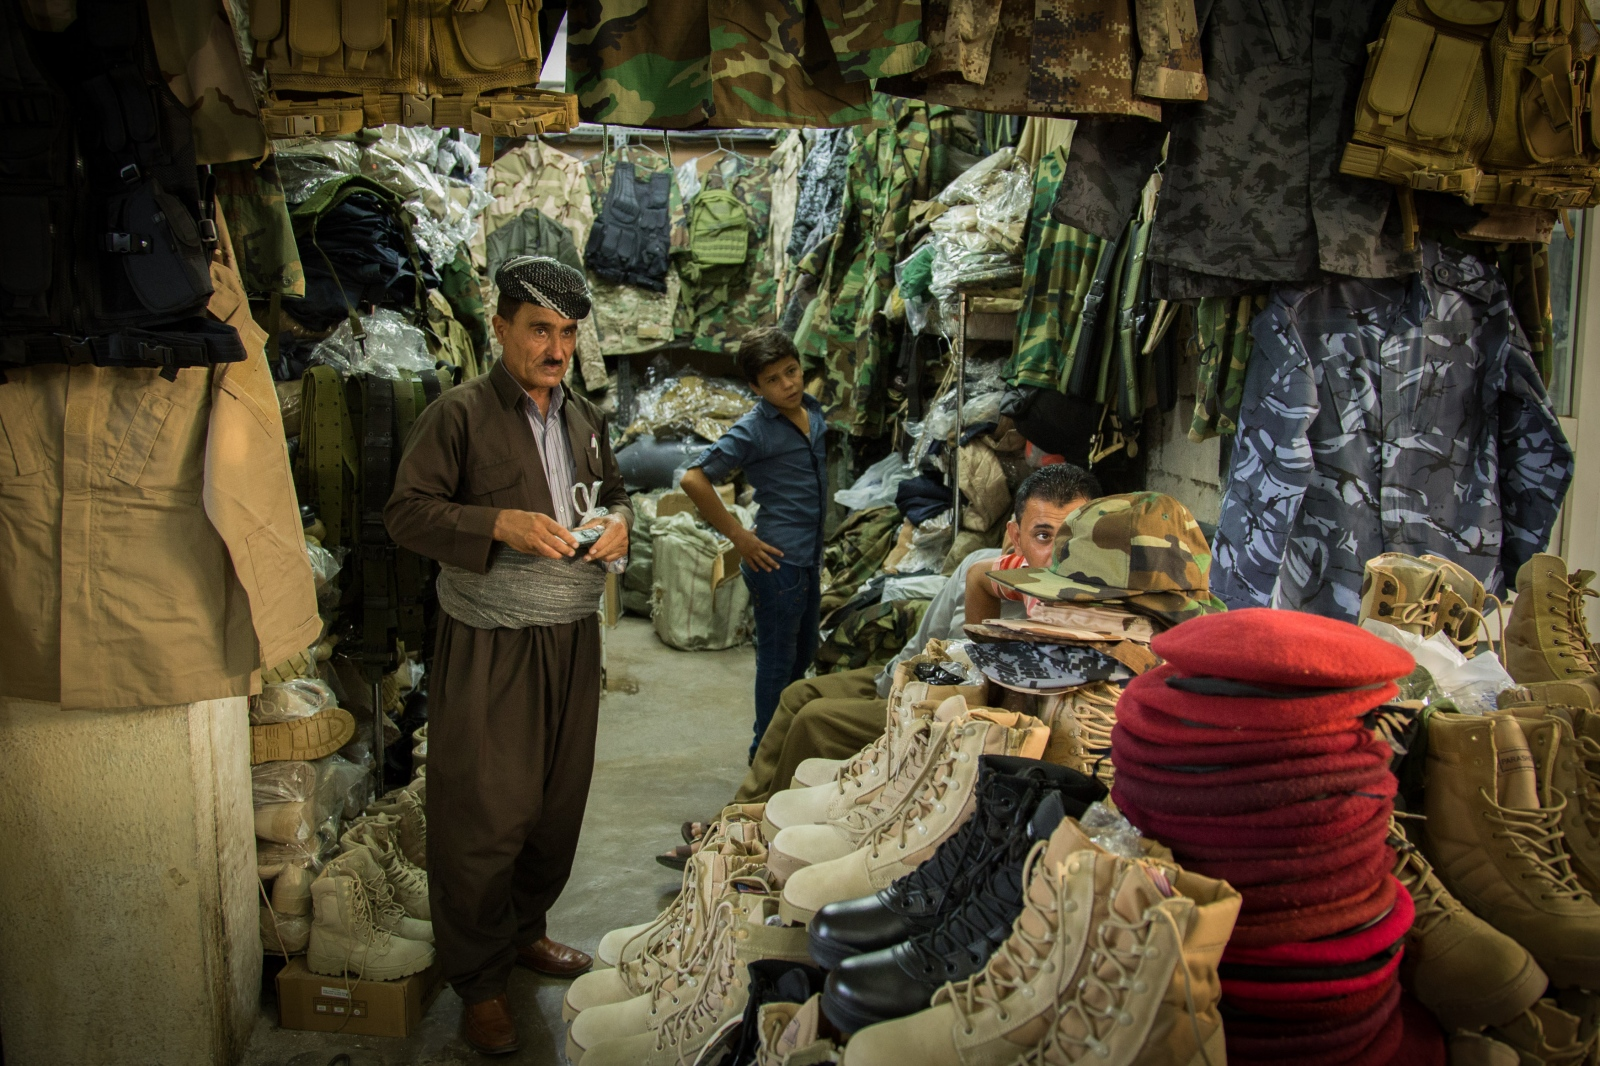 Wartime clothing and equipment for sale at a military market in Erbil, Iraq.